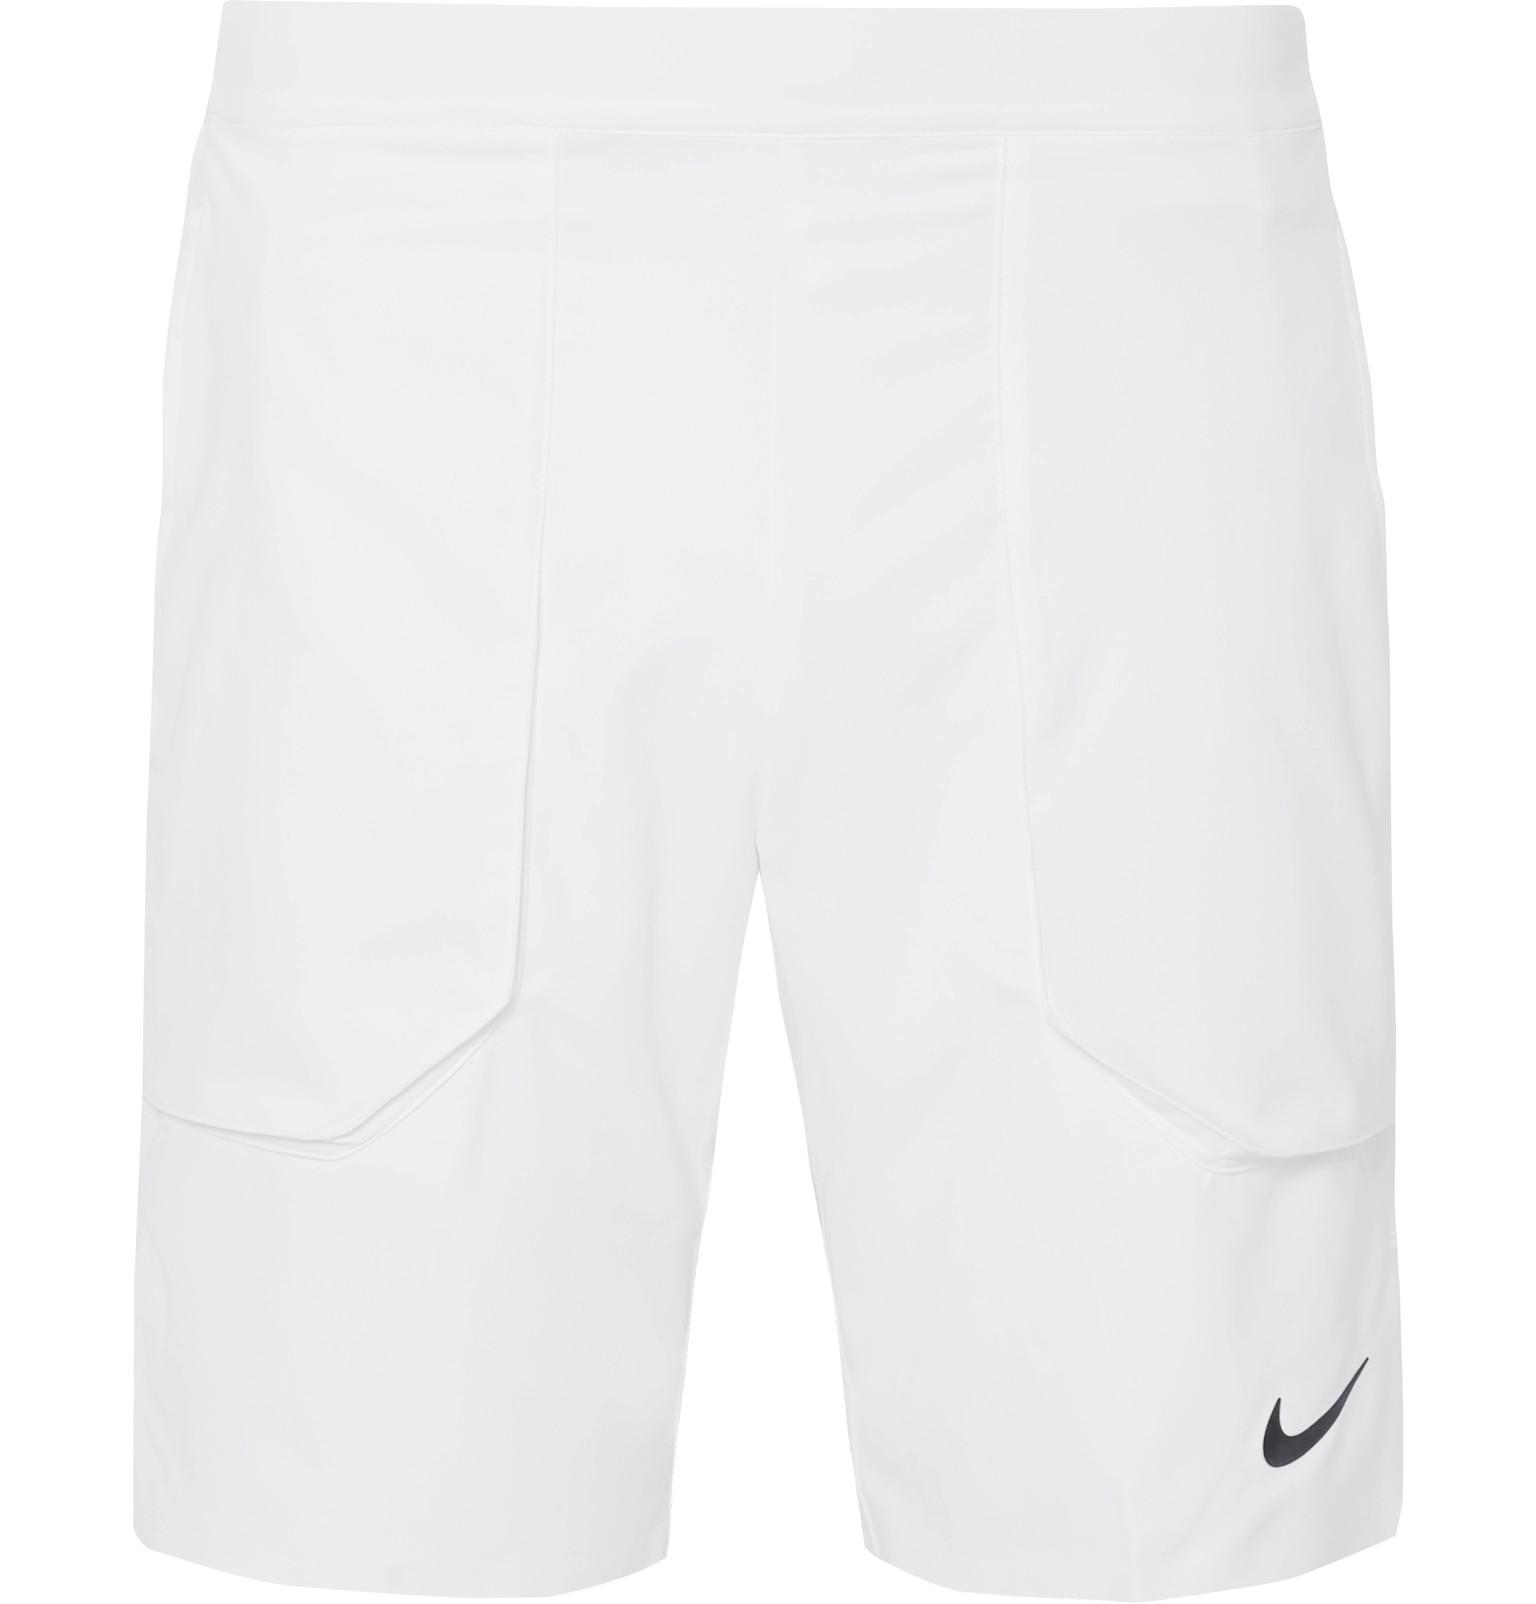 81b8eea329f0 Nike Nikecourt Flex Ace Dri-fit Tennis Shorts in White for Men - Lyst